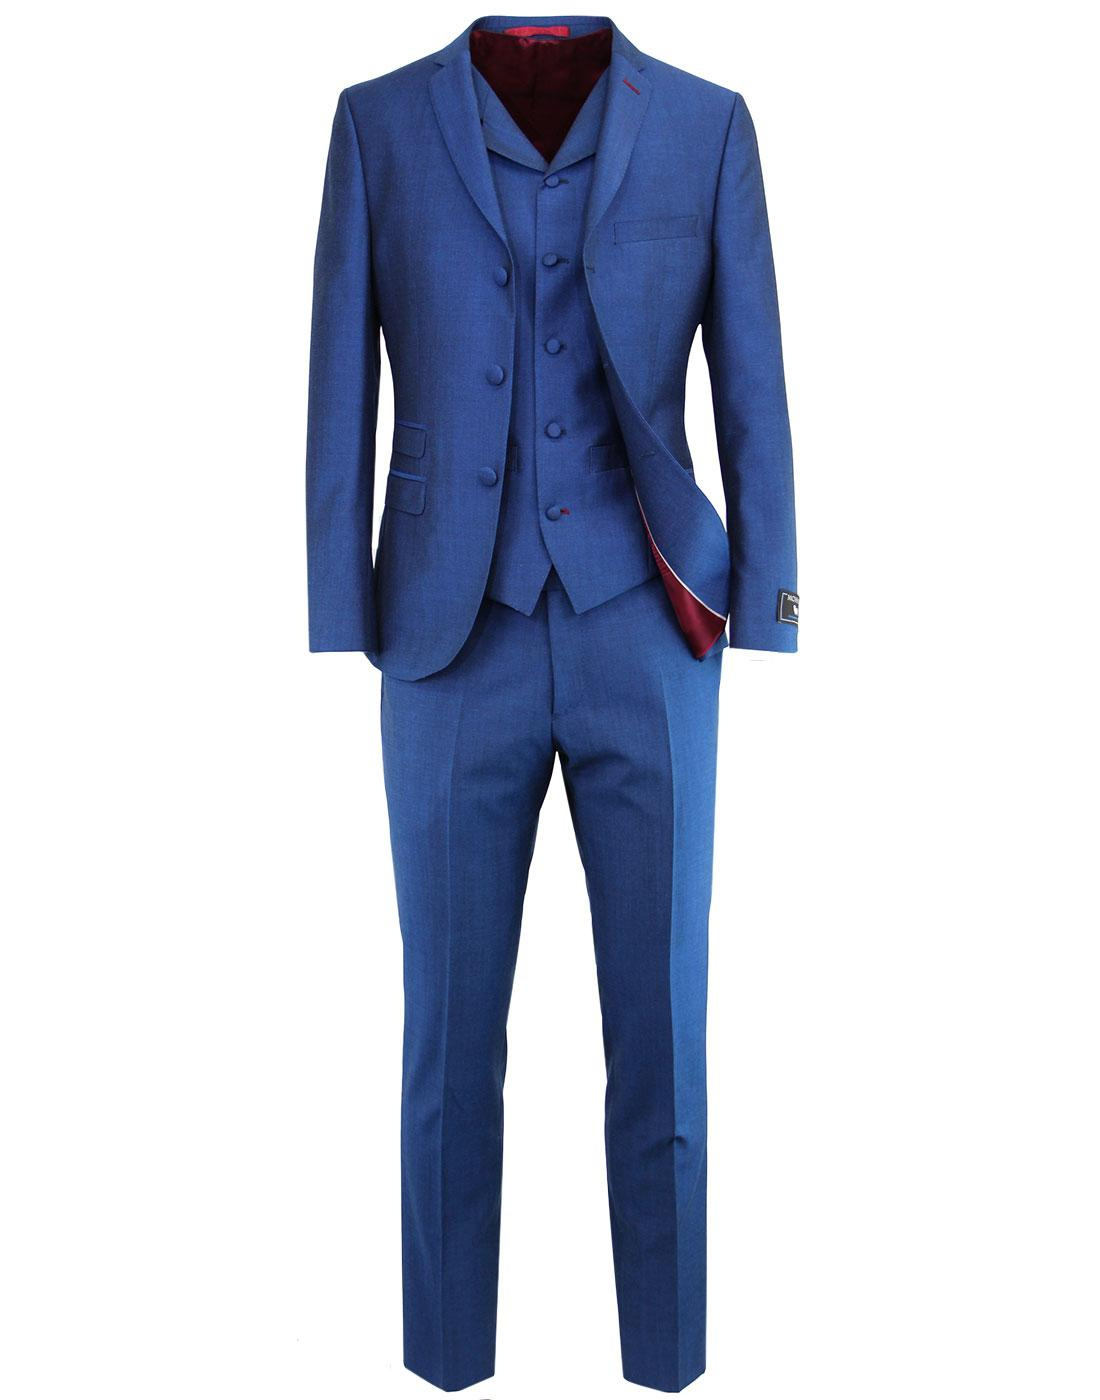 MADCAP ENGLAND 60s Mod Mohair Tonic Suit in Blue